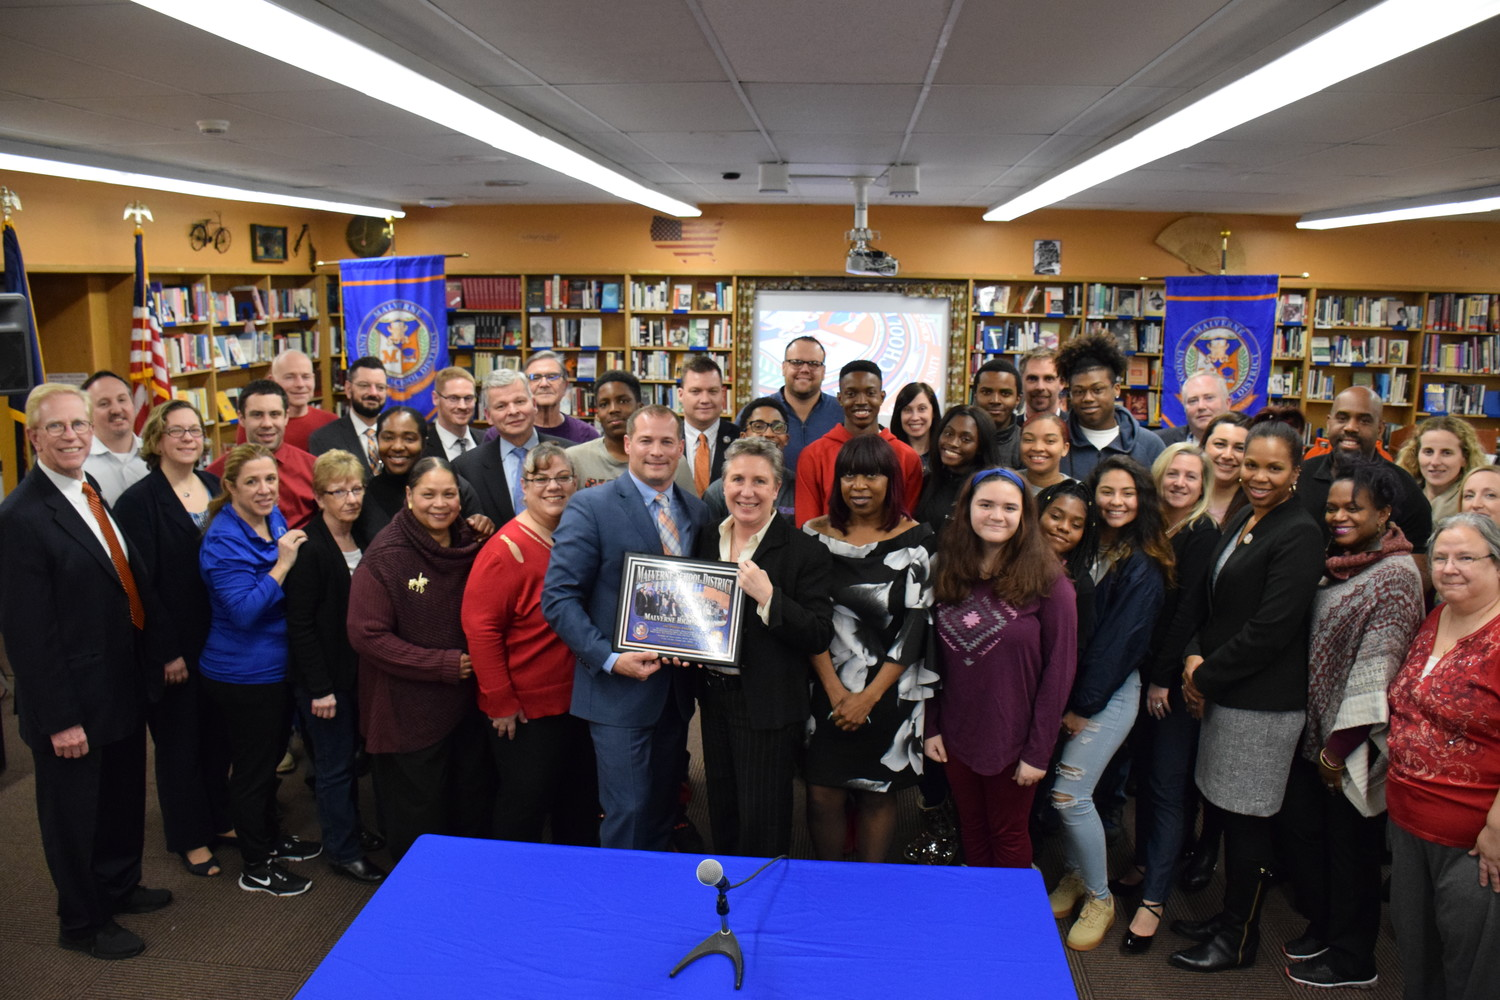 Malverne School District board members, administrators, high school teachers and students received a plaque from SUNY Albany for being featured in its NYKids study.